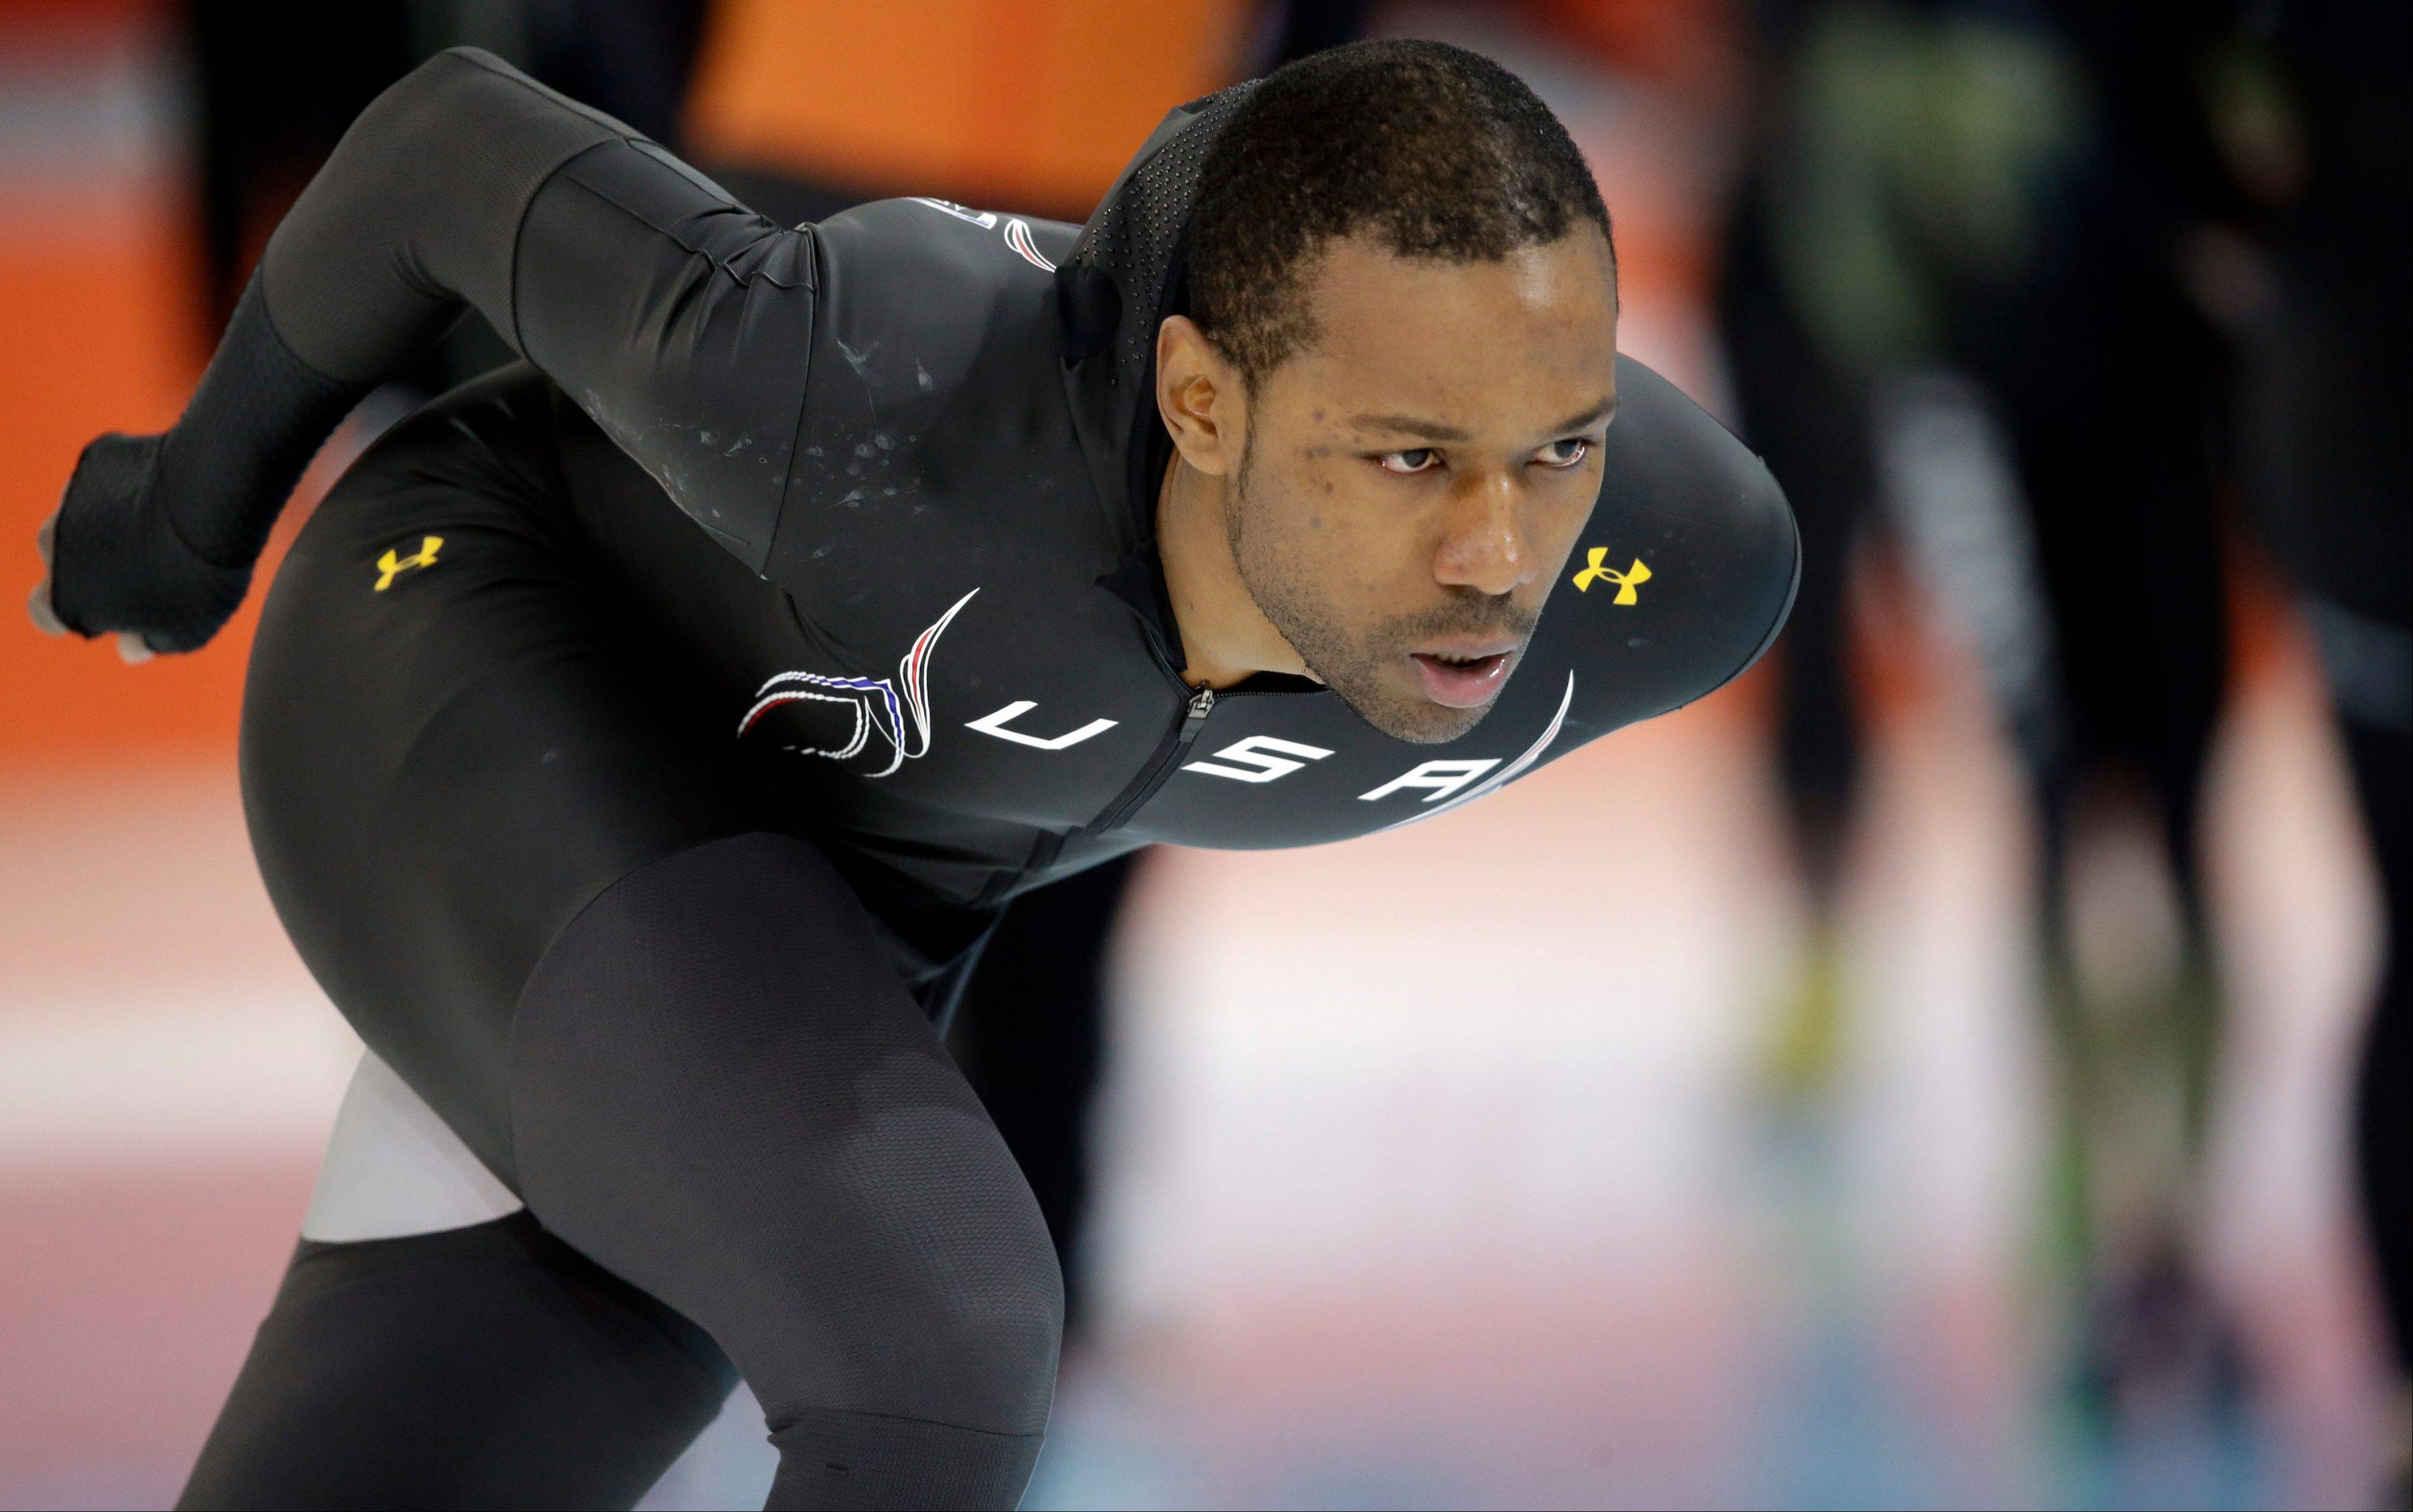 Chicago speedskater Shani Davis of the U.S. trains at the Adler Arena Skating Center during the 2014 Winter Olympics in Sochi, Russia. He is favored to earn a medal in the 1,000 and 1,500 meter events.